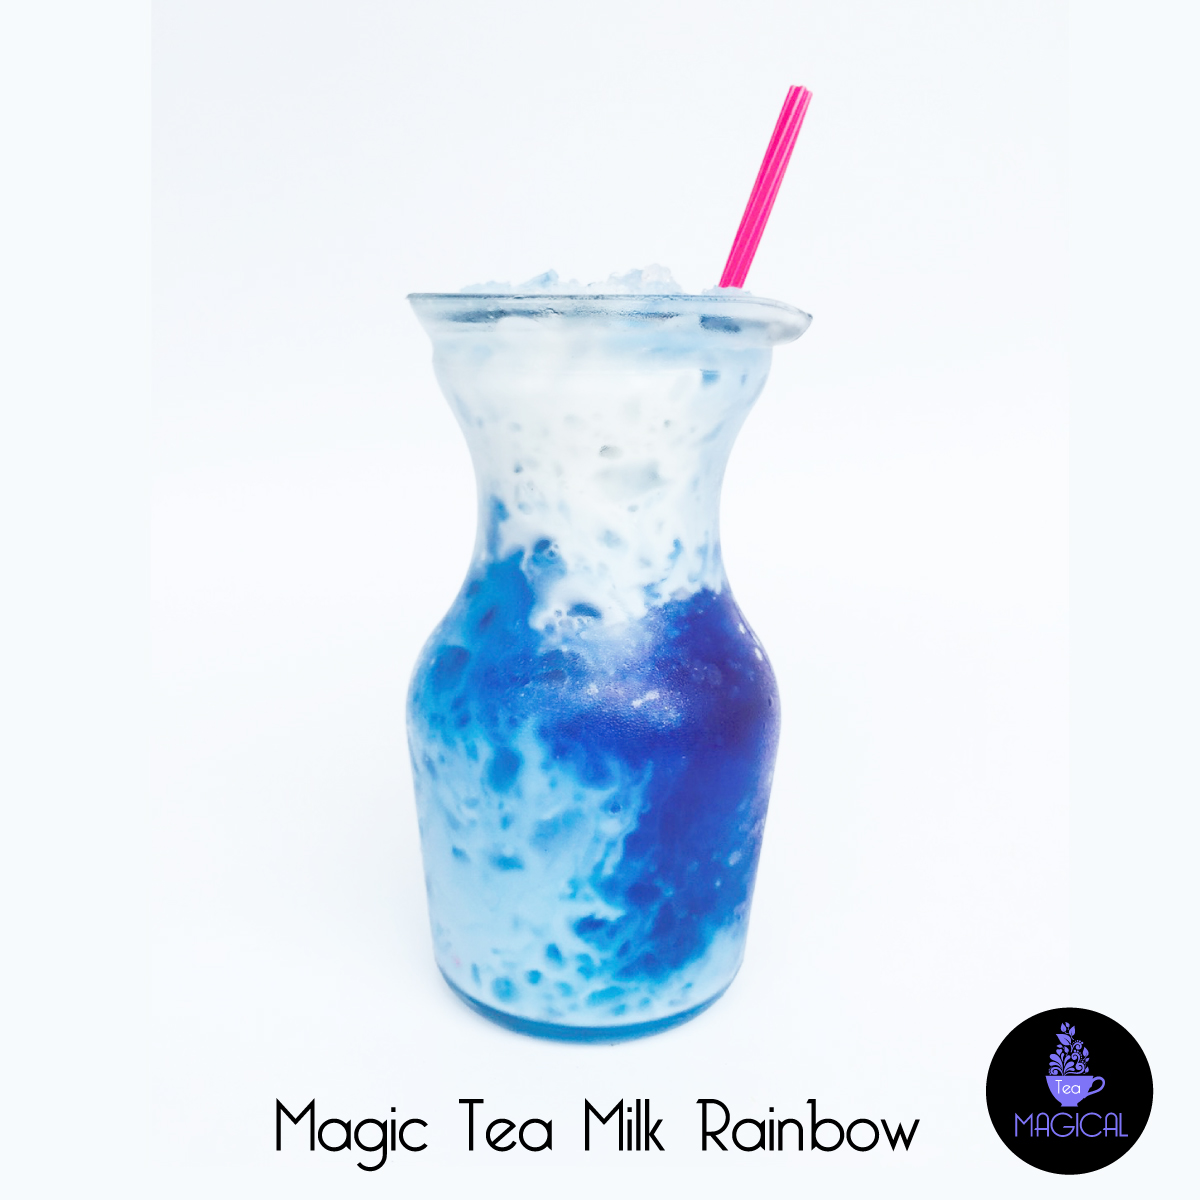 Magic Tea Milk rainbow